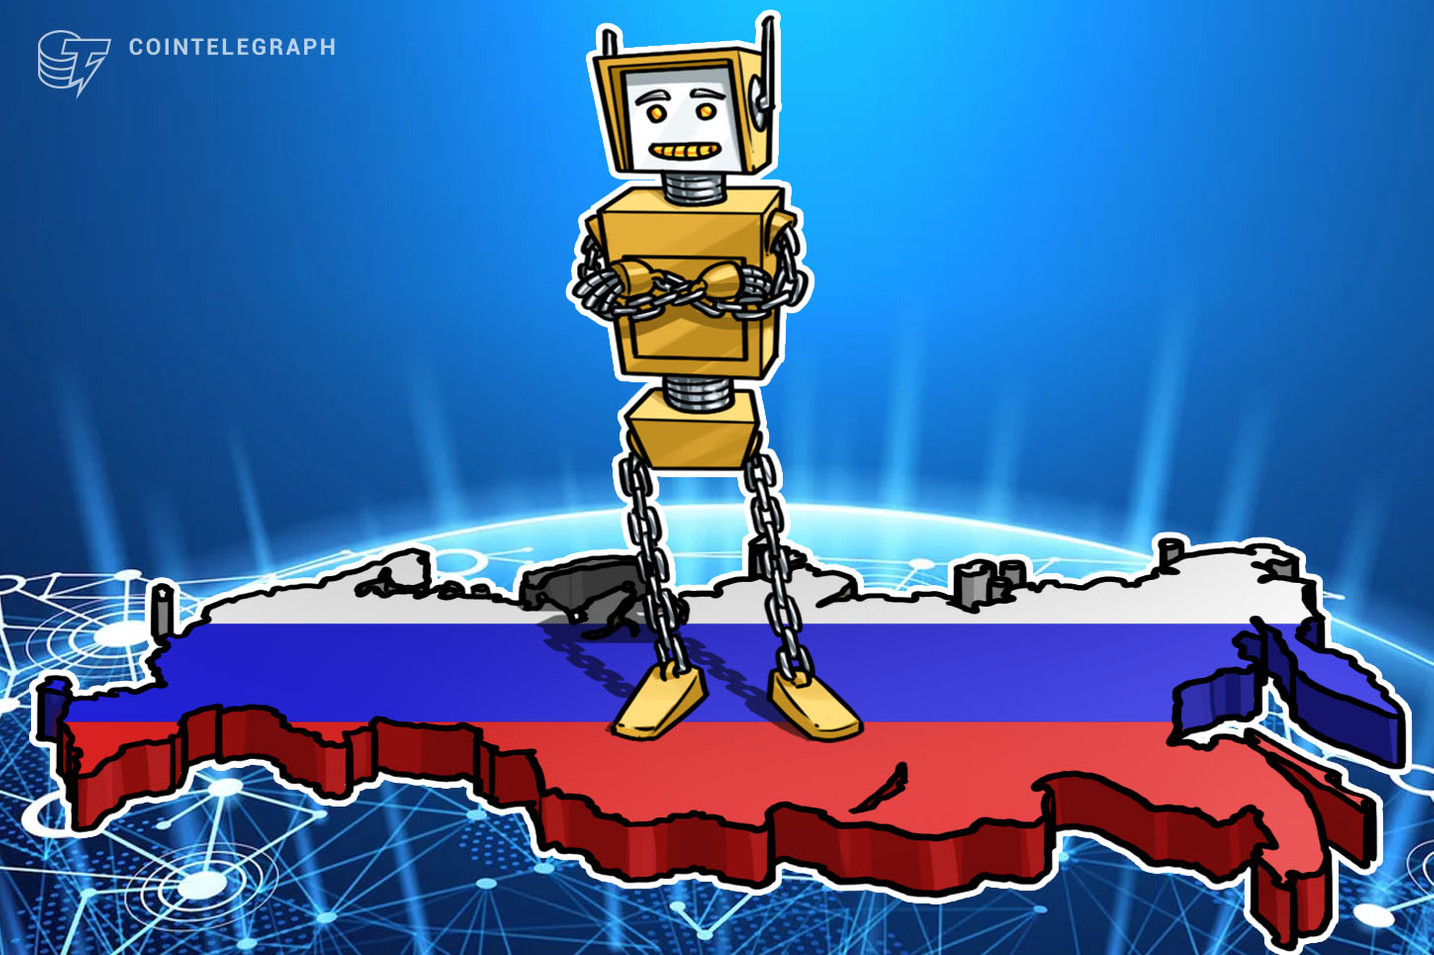 Russia: Sberbank CEO Says Industrial Scale Blockchain Adoption Is 1-2 Years Away